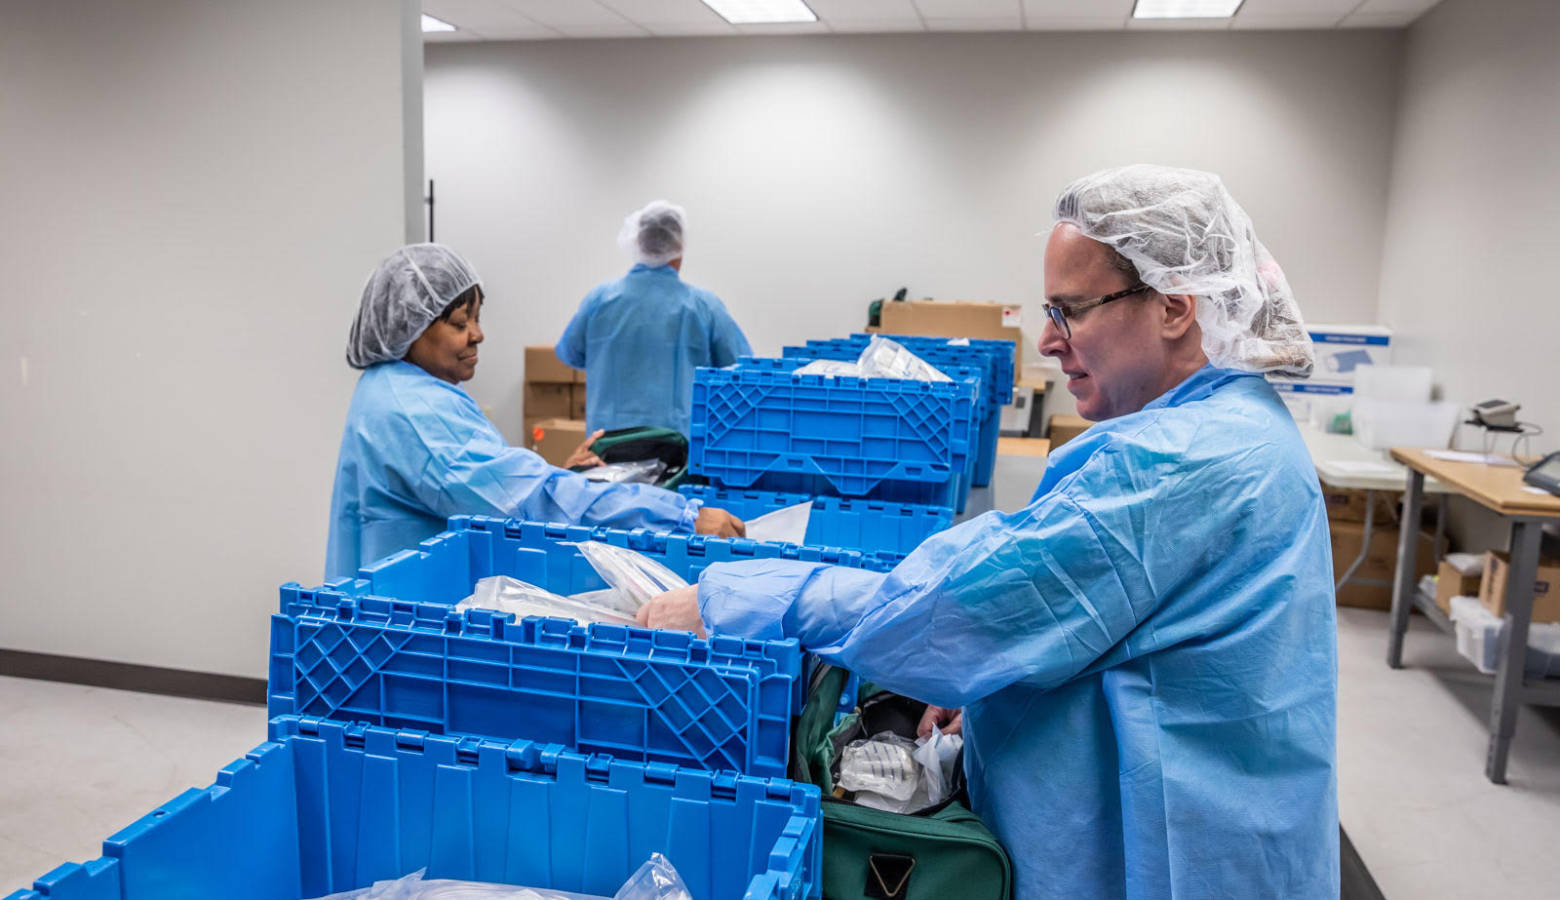 Workers at Bosma Enterprises with visual impairments packaging products. (Courtesy of Bosma Enterprises)